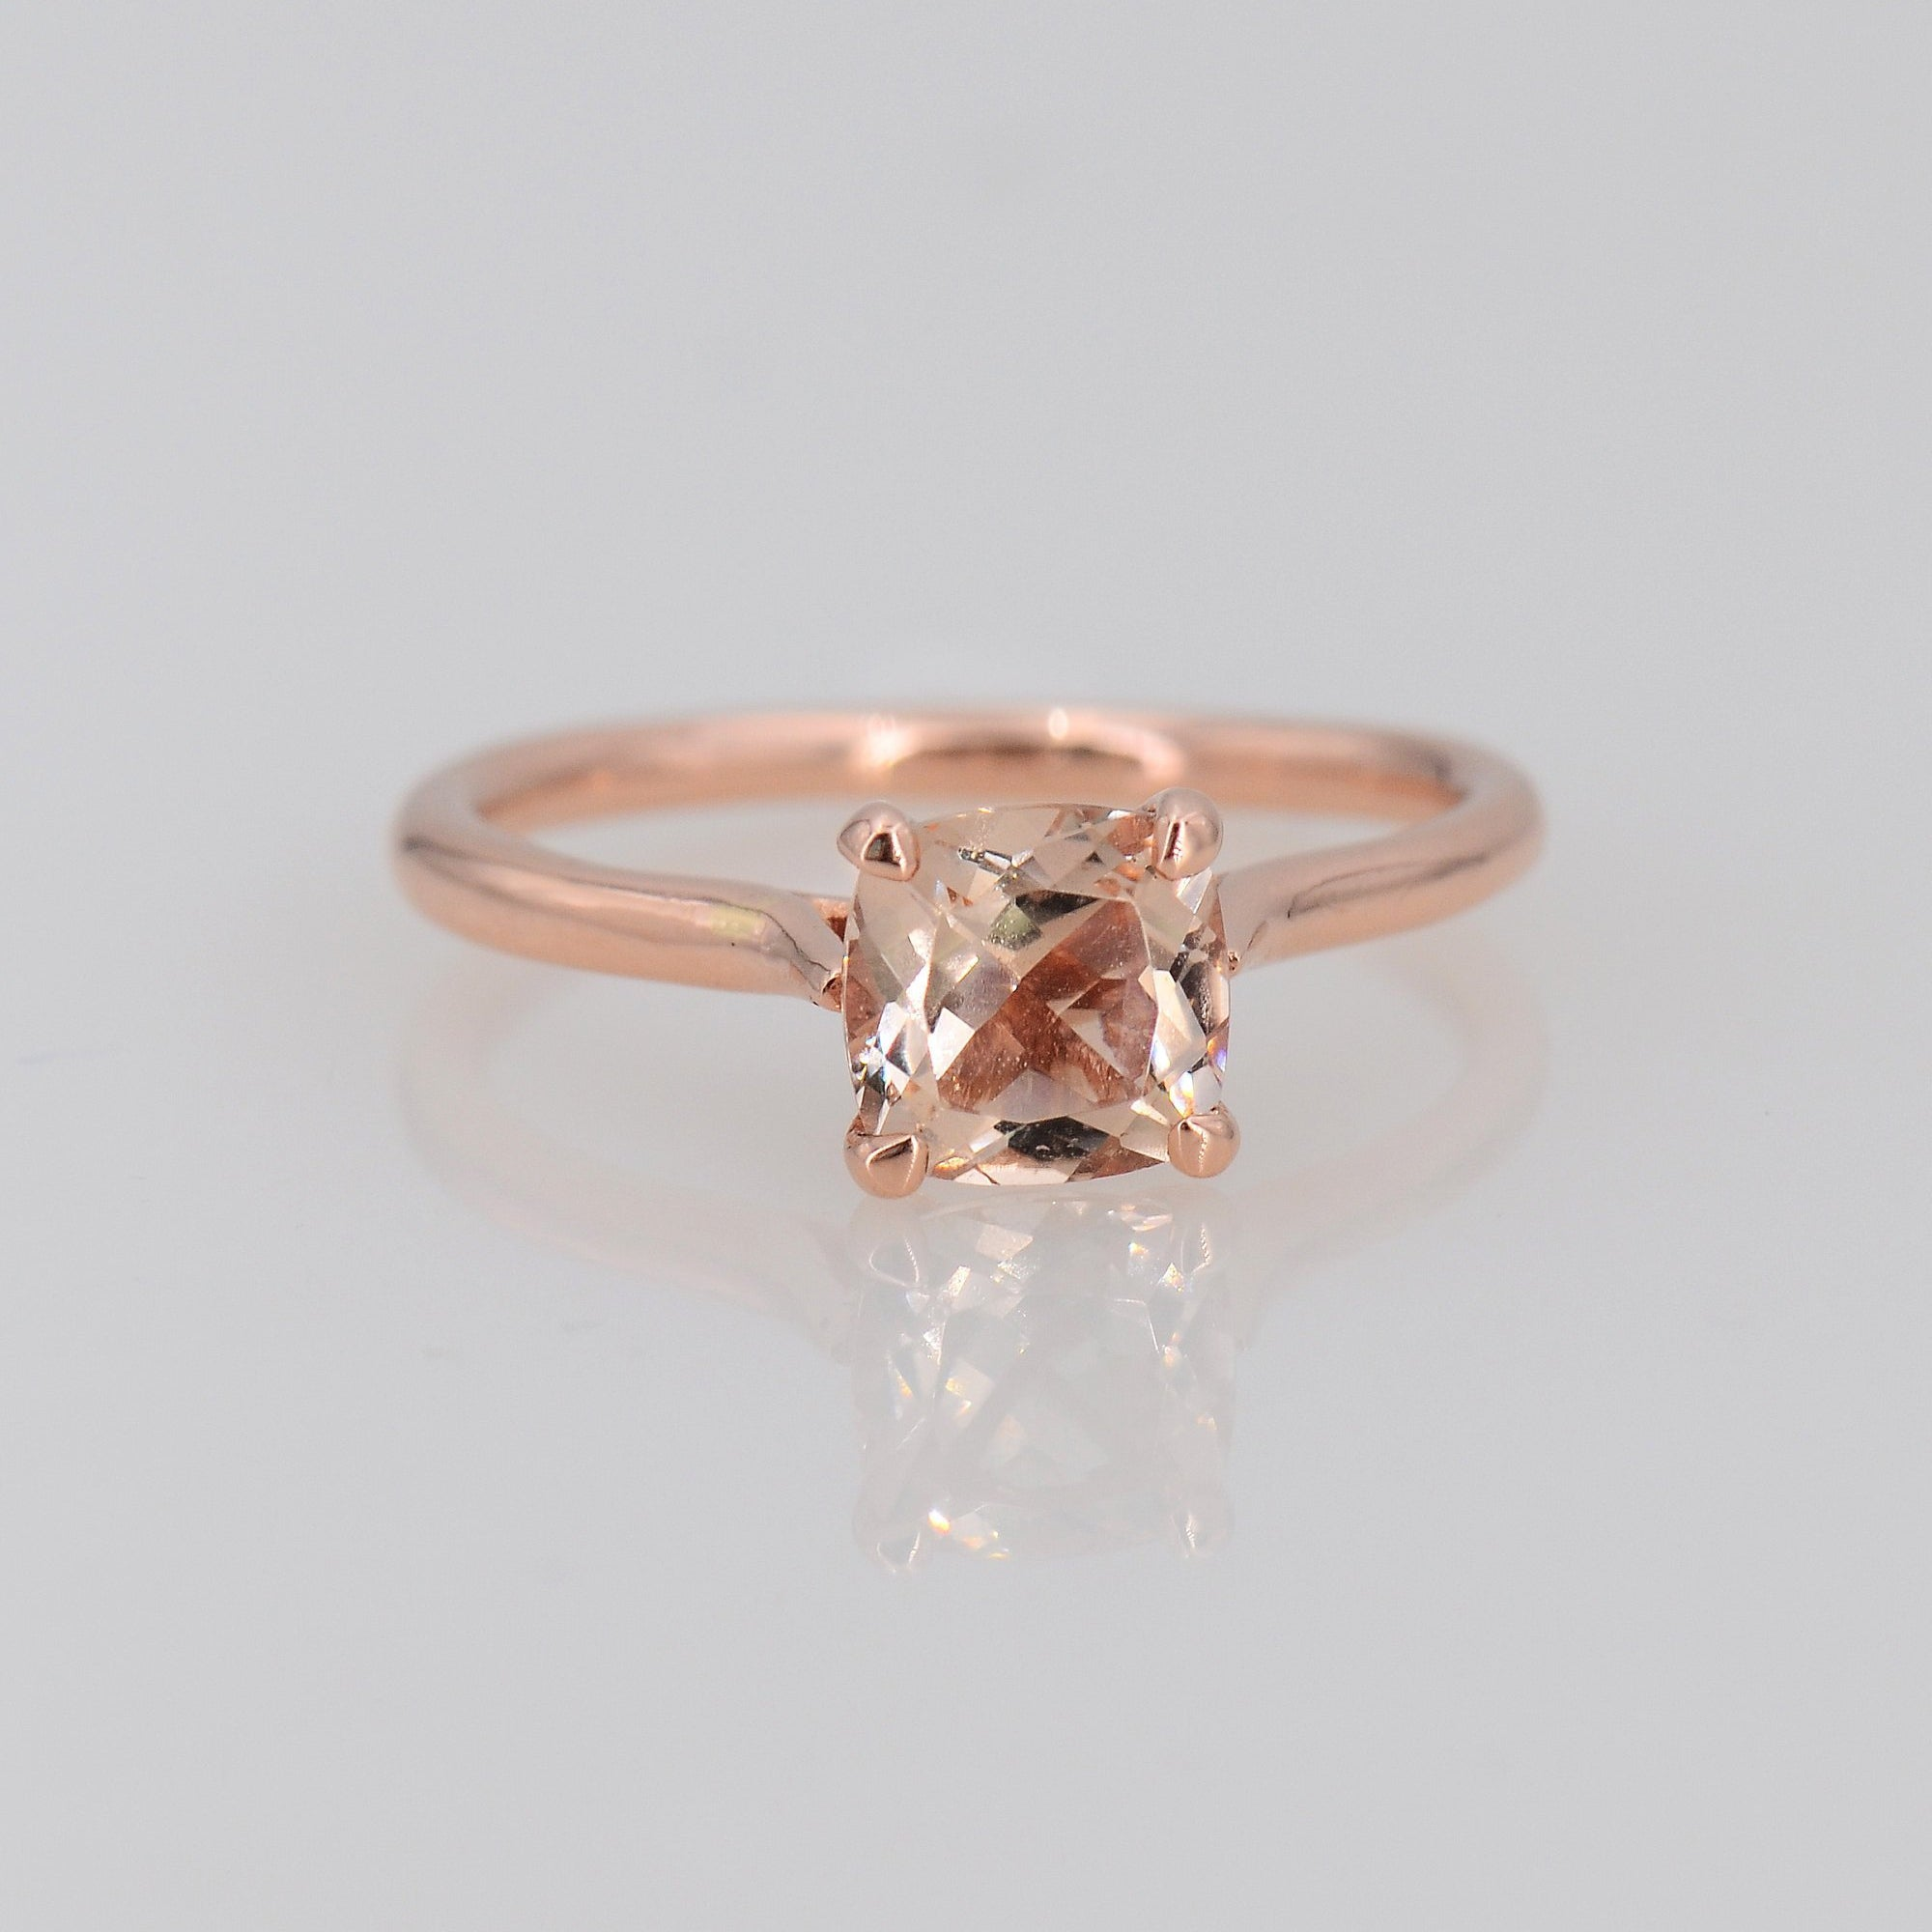 Morganite Rose Gold Ring, Solitaire Morganite Ring